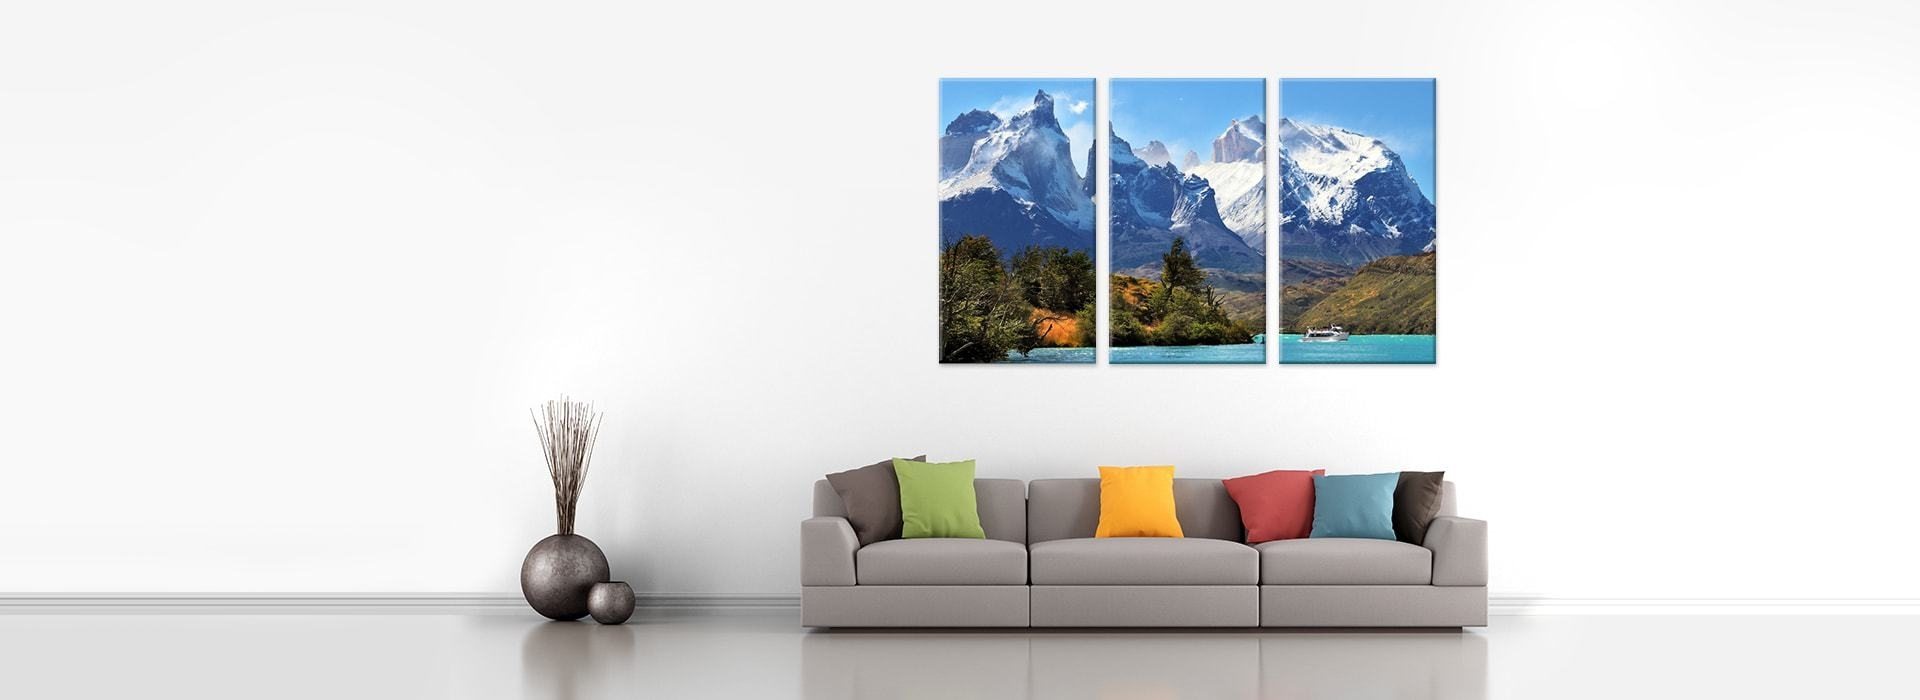 Canvas Prints | Canvas Factory Within Most Up To Date New Zealand Canvas Wall Art (View 6 of 15)